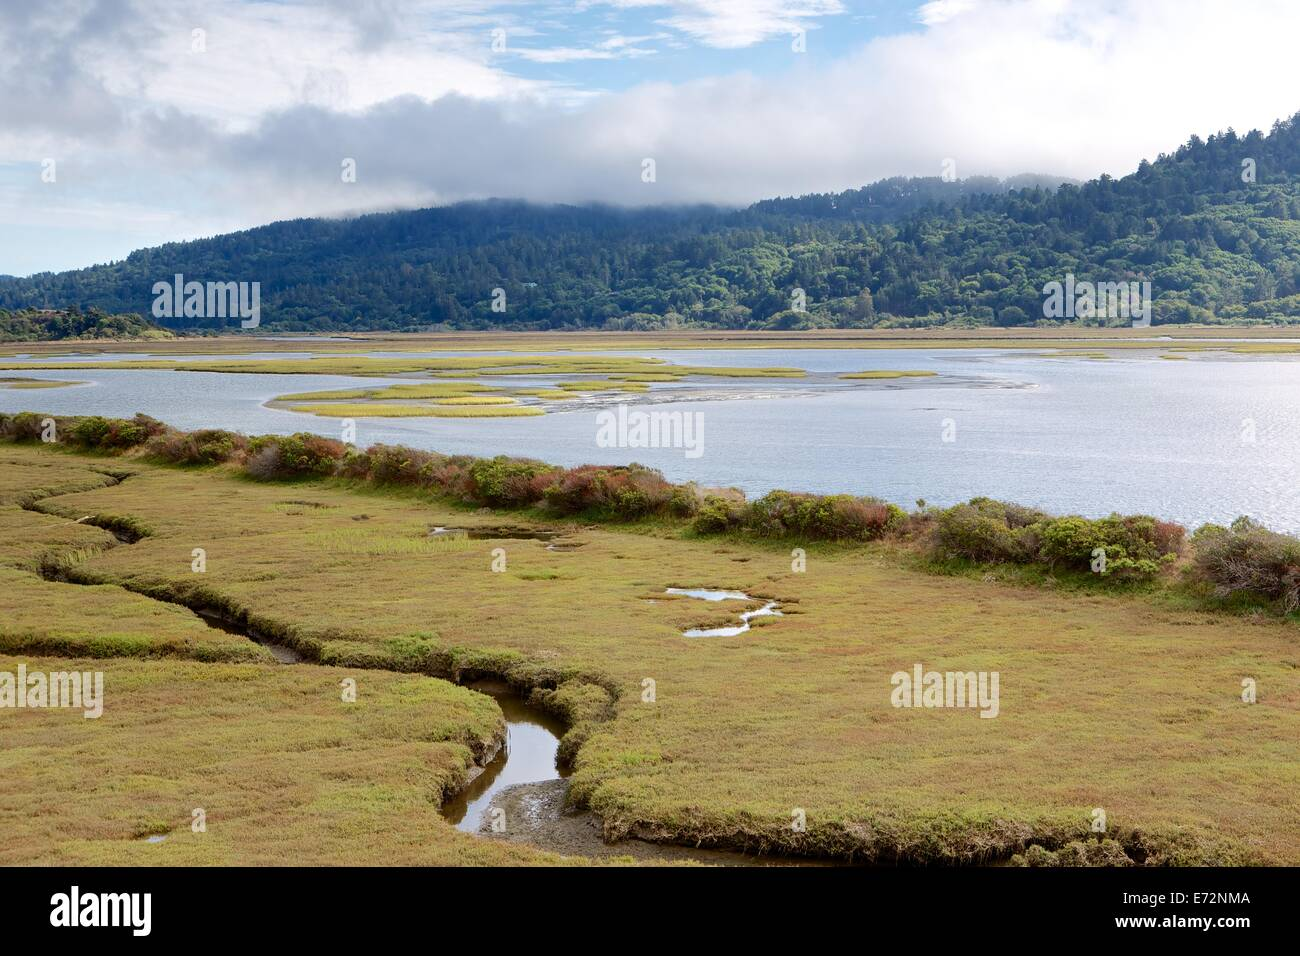 Wetland marshes in Point Reyes National Seashore, Marin County, California. - Stock Image